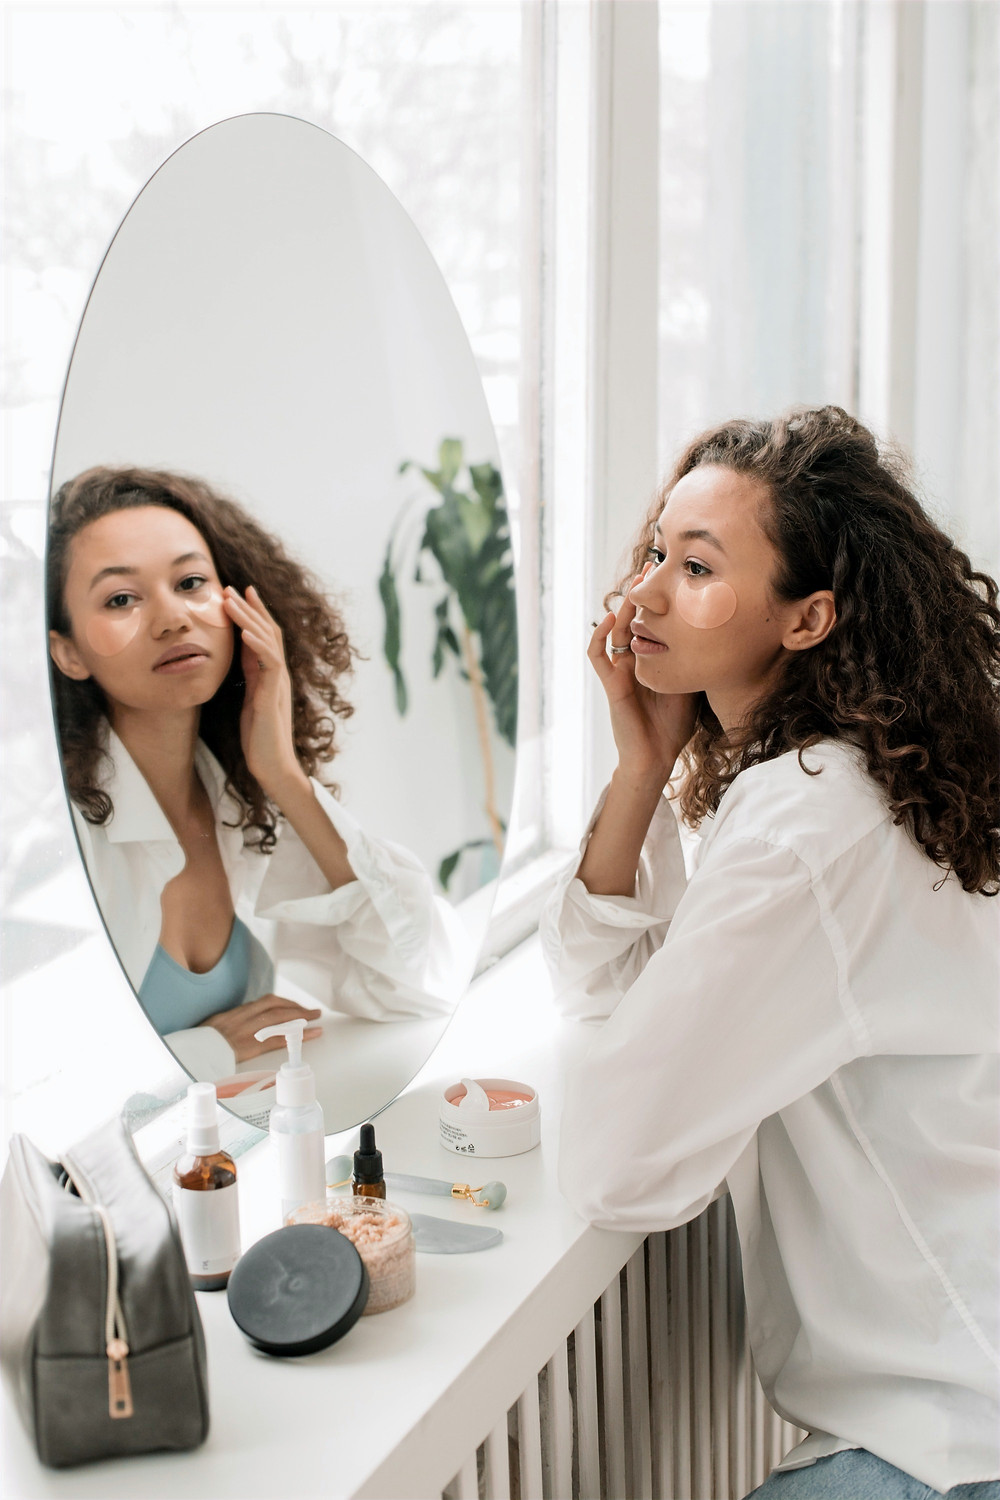 A woman looks in the mirror in a white minimalist room while attending to her skin her the reflection.